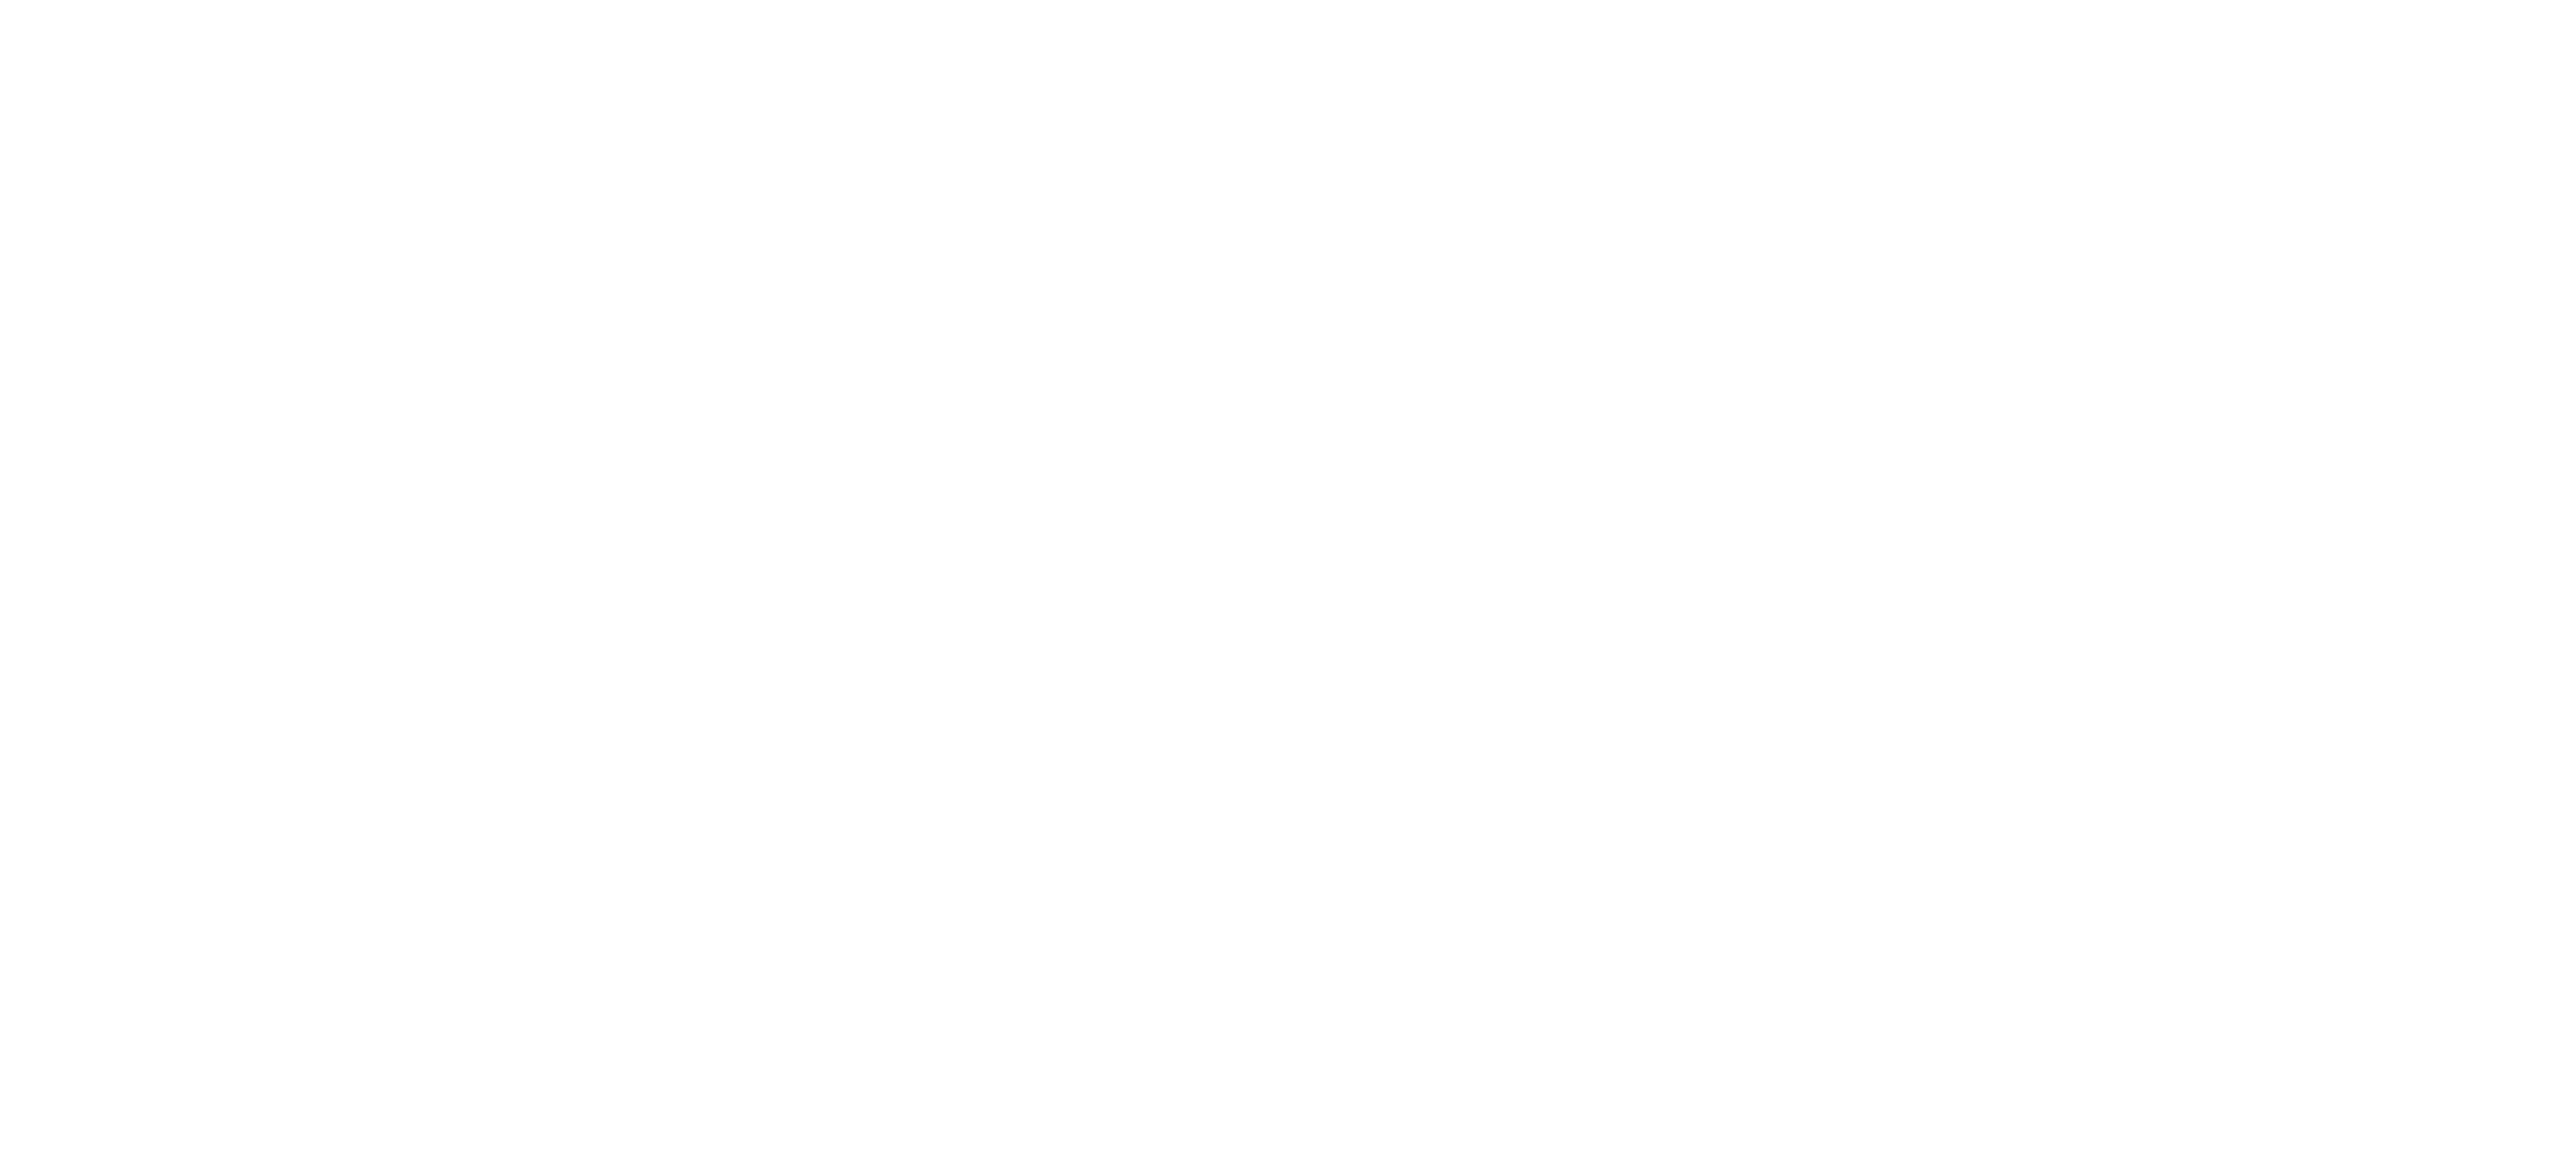 II CARRERA EMPRESAS ESIC -  SUR Business & Marketing: MÁLAGA